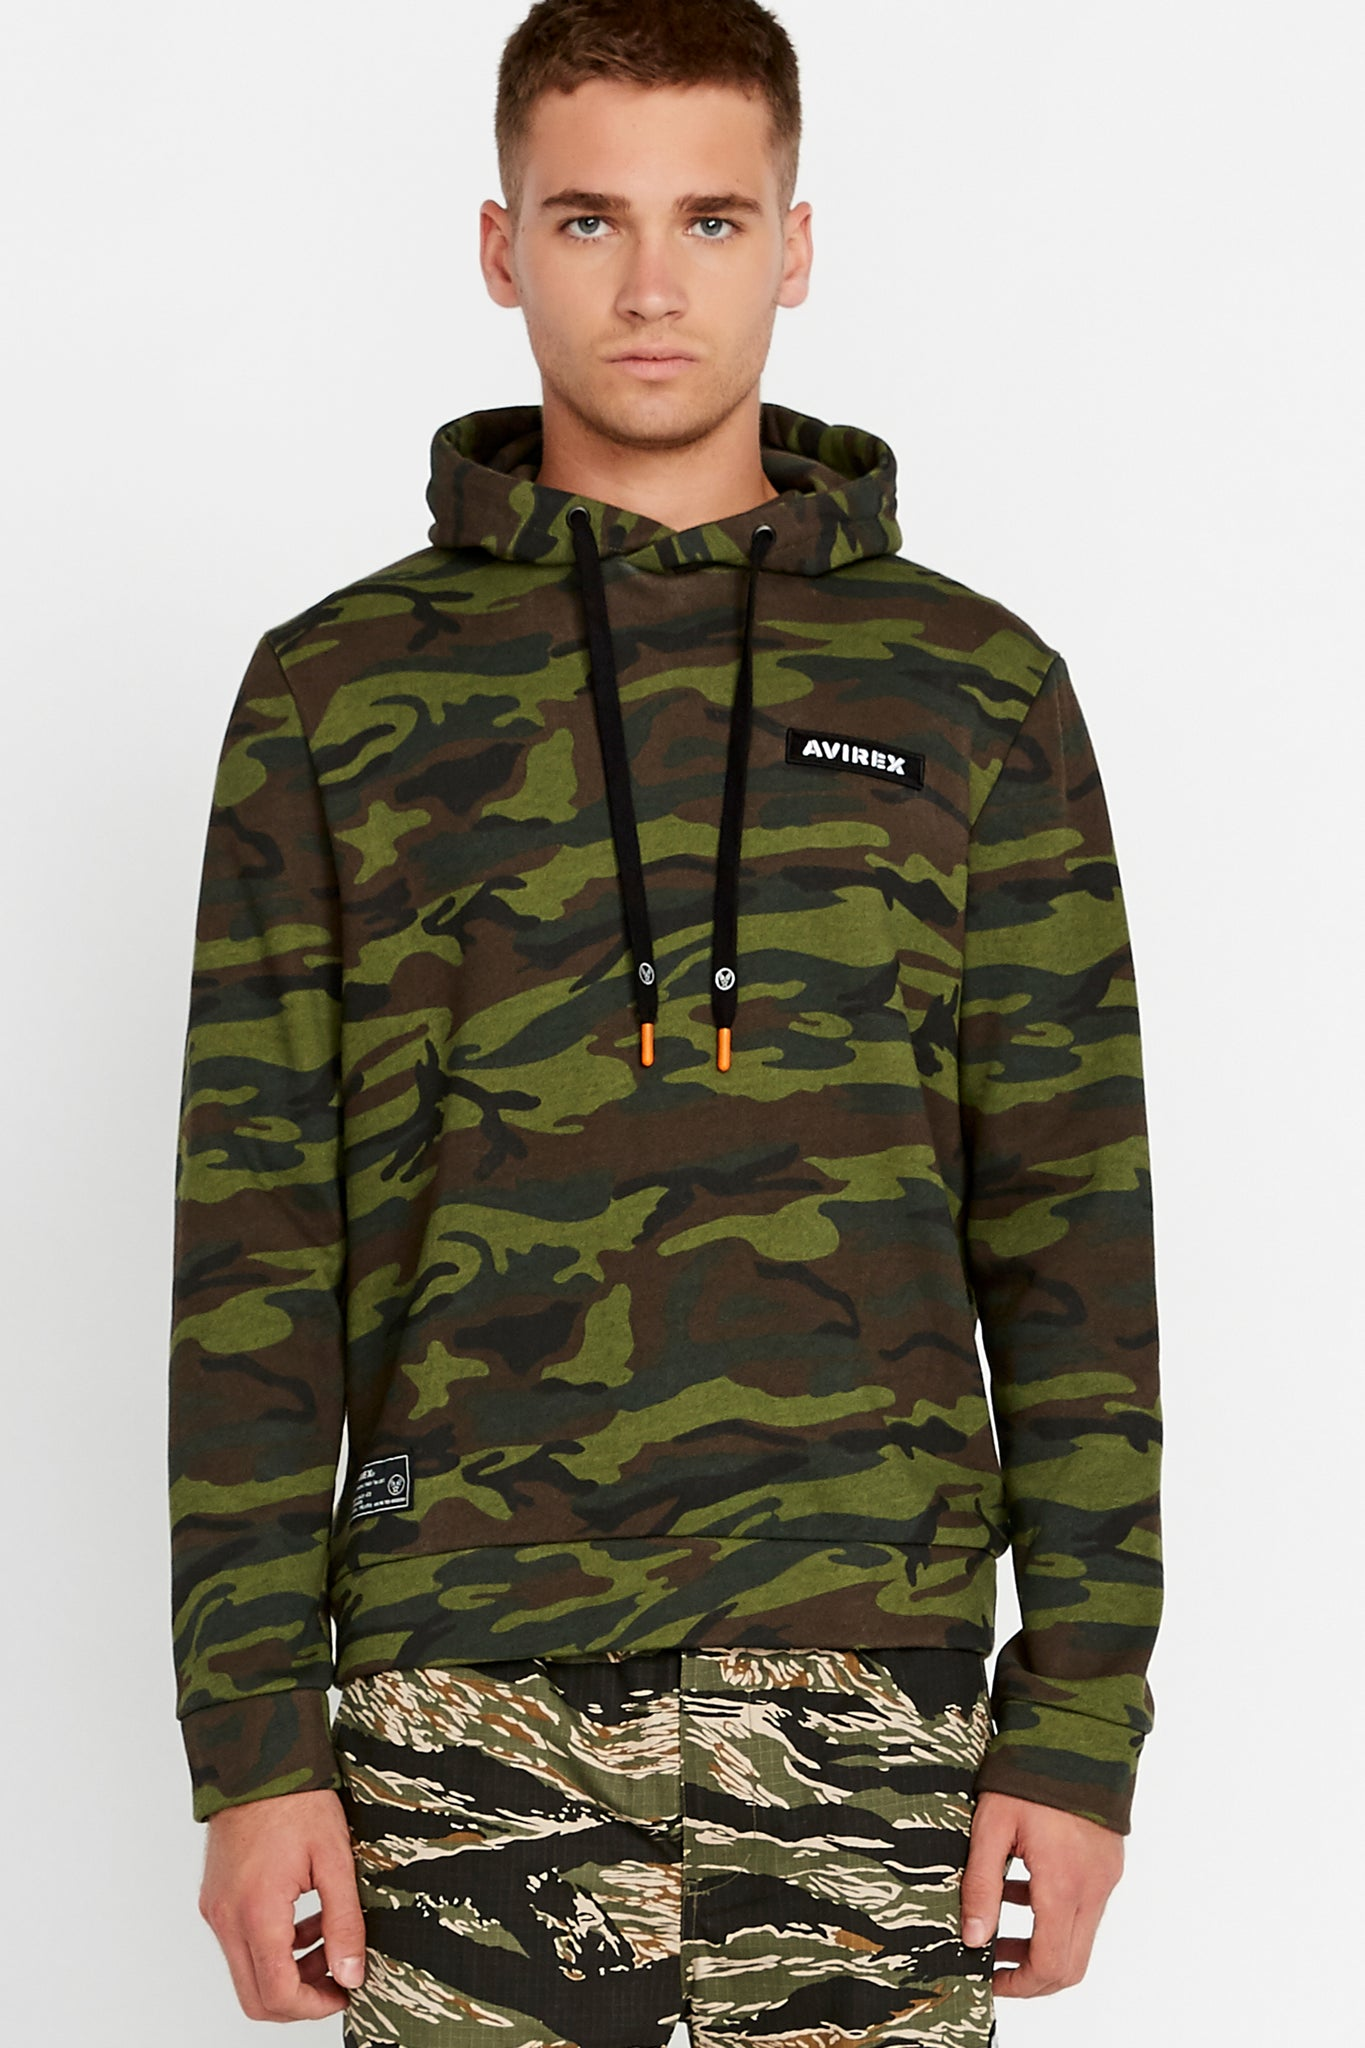 Men wearing a green camo print hoodie sweatshirt with patch on the chest and patch on right bottom